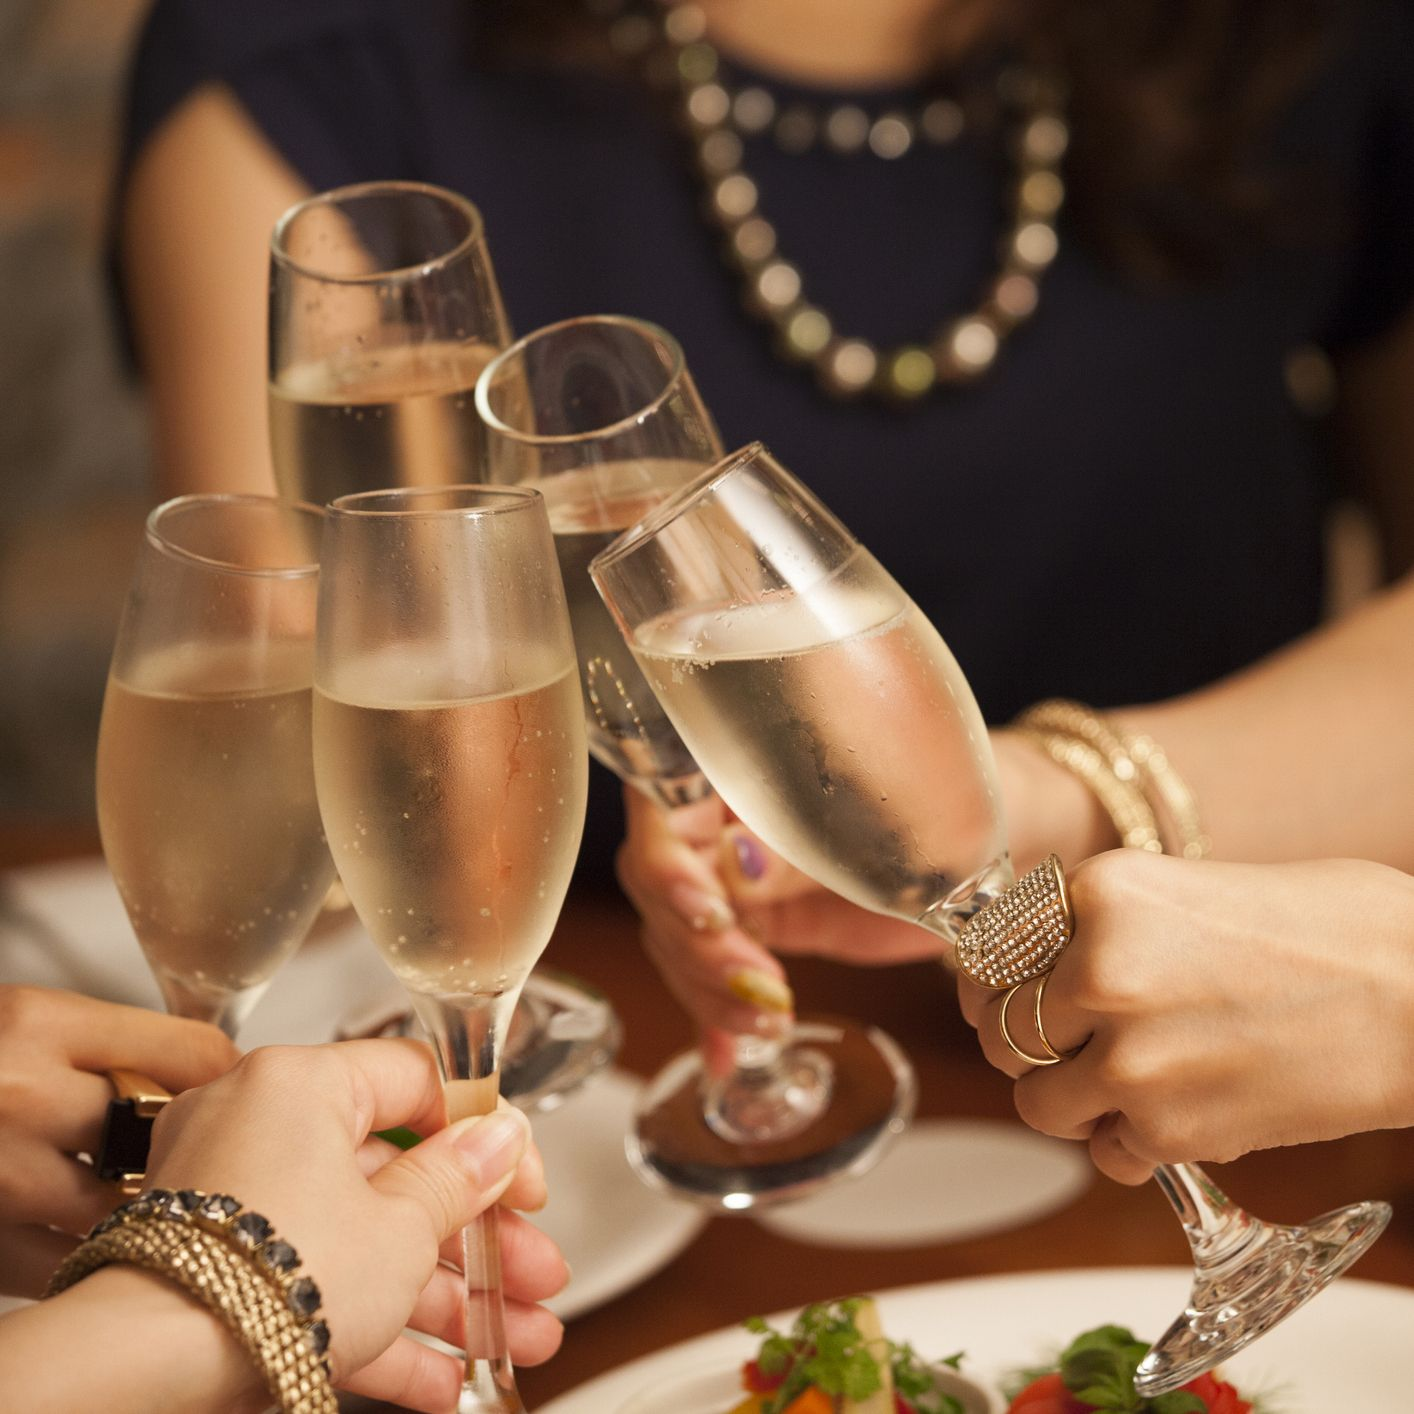 Close-up of the hands of the girls making a toast.